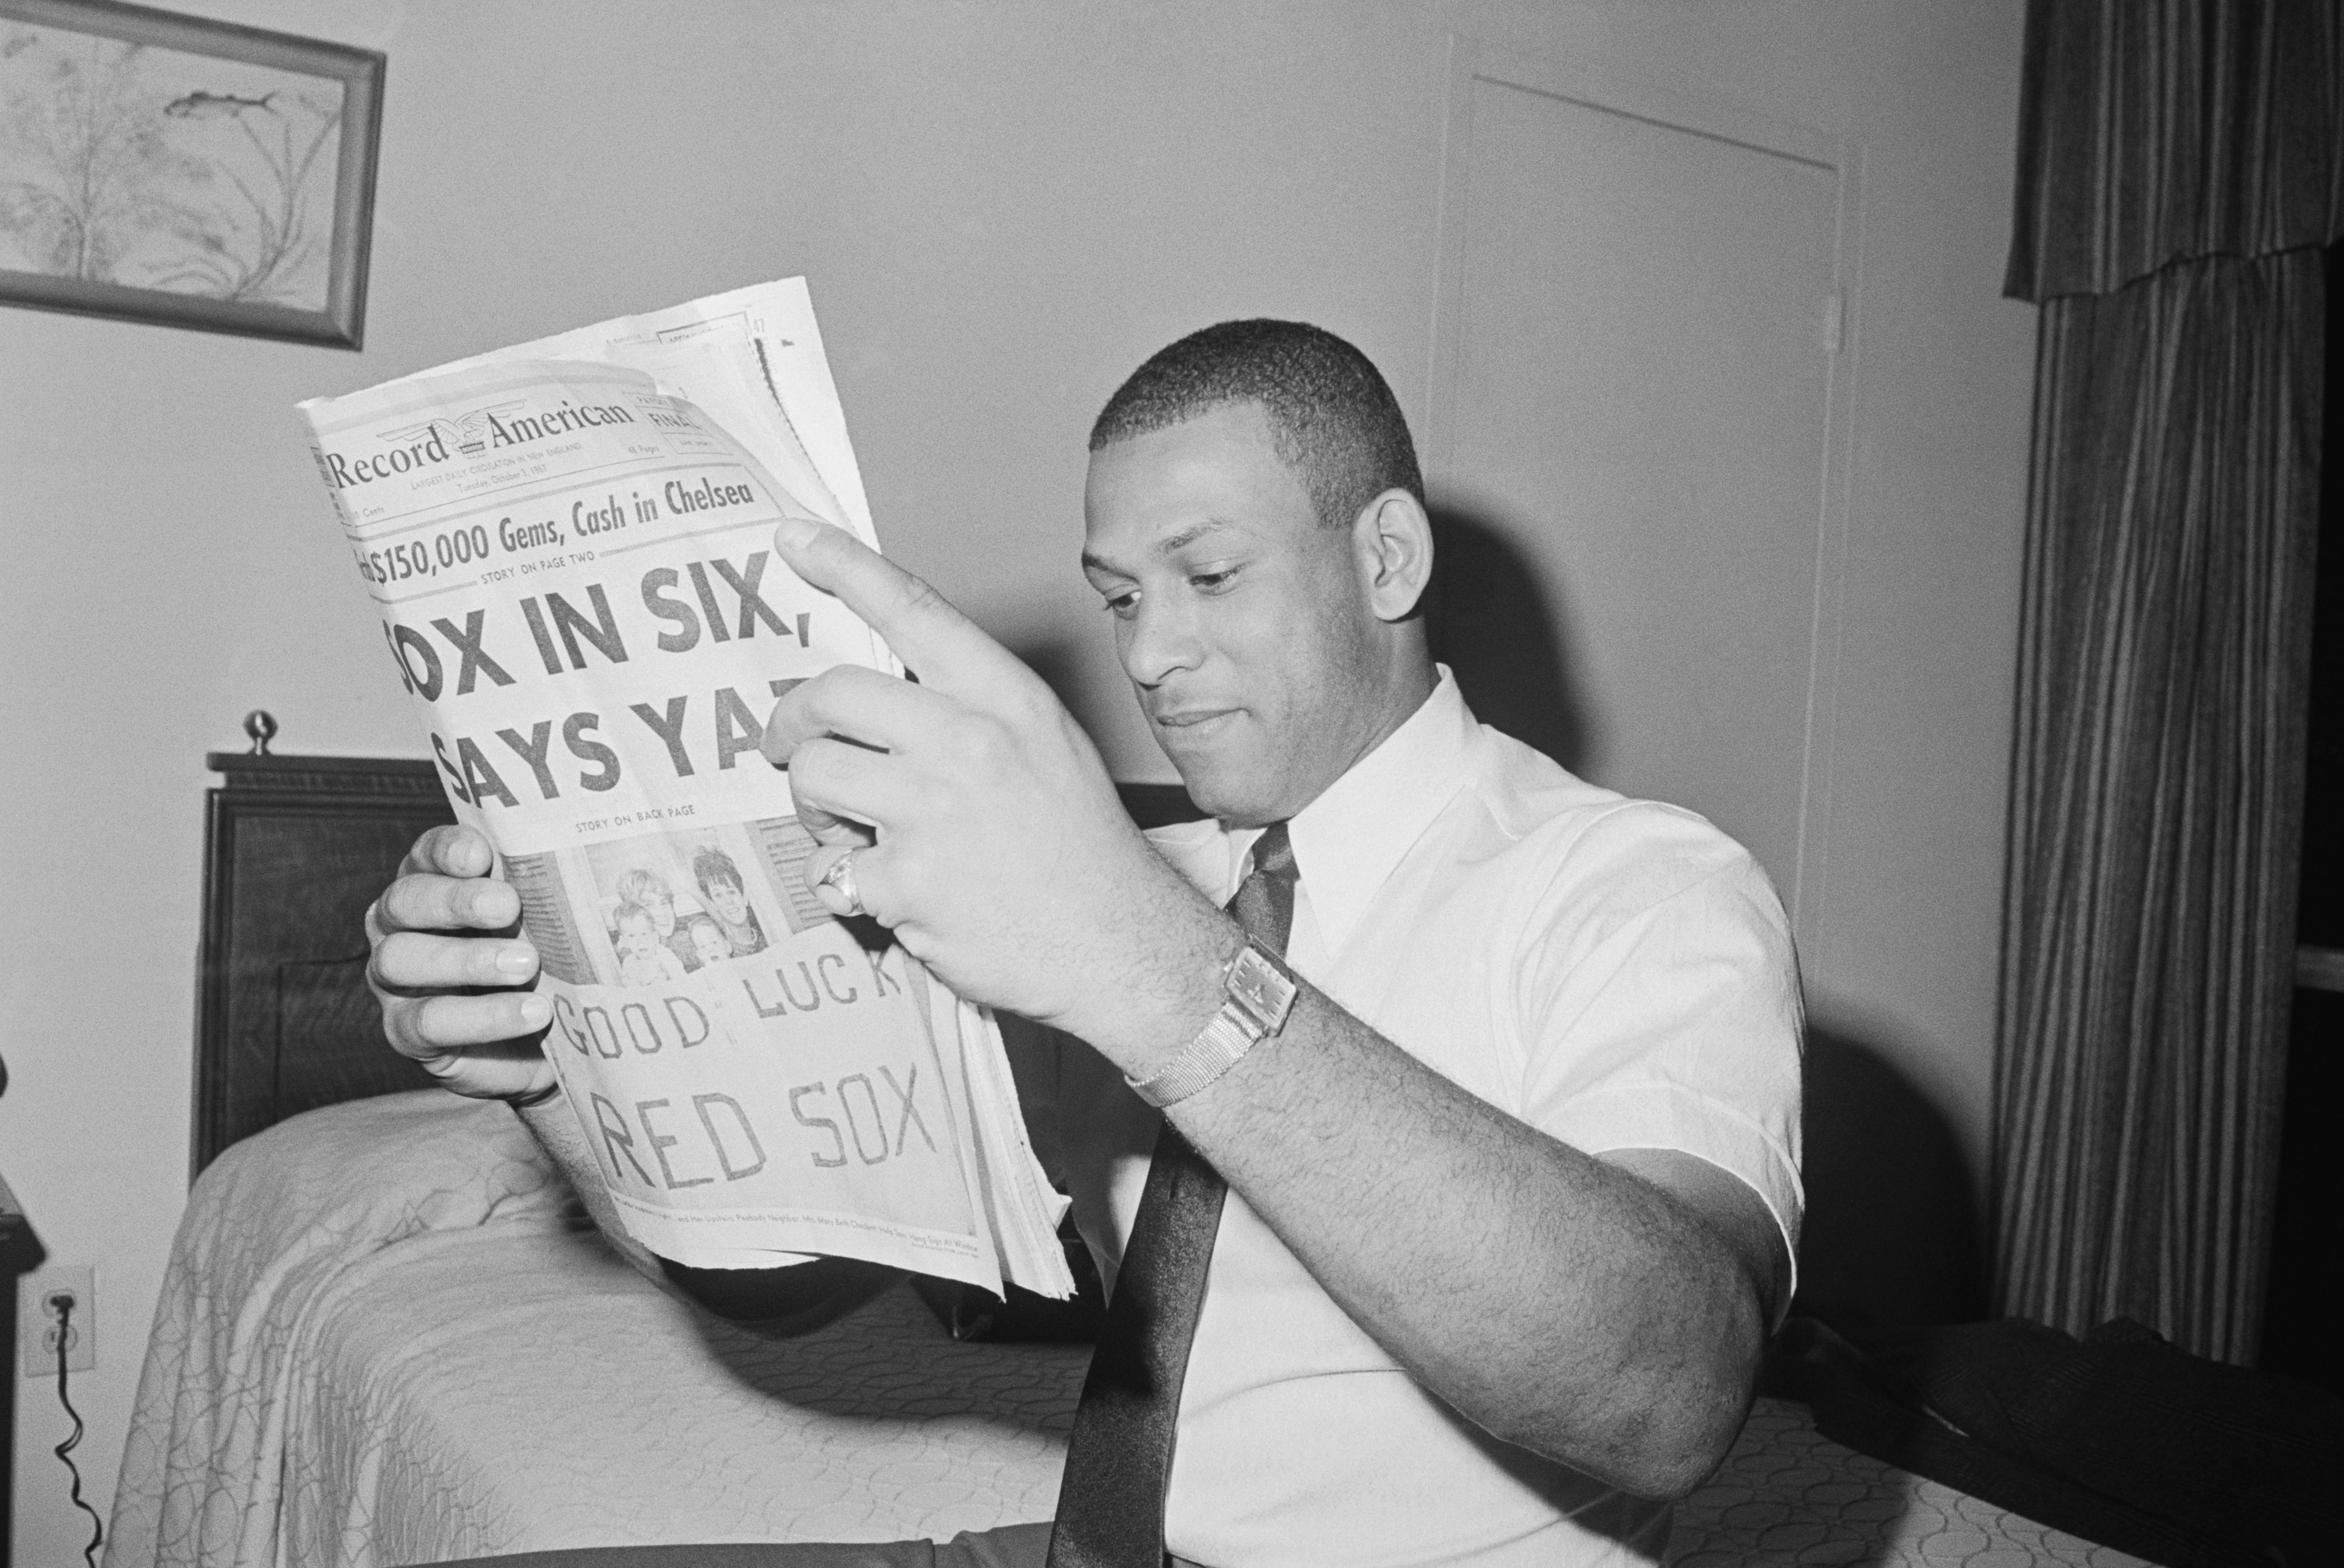 St. Louis Baseball Player Orlando Cepeda Reading Newspaper